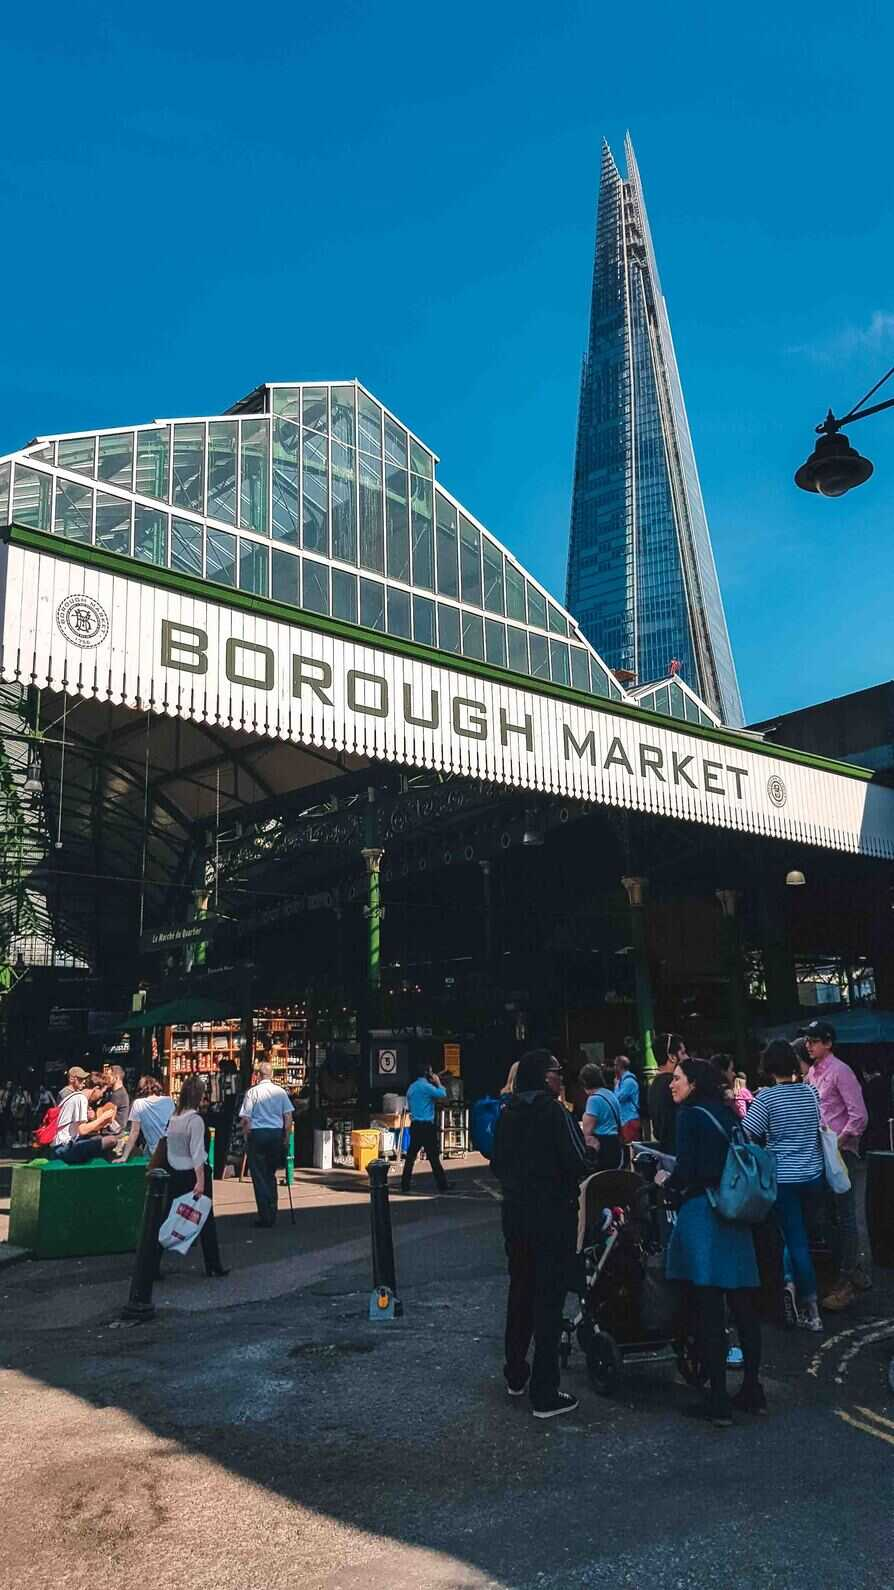 Borough Markets is on everyone's must-see list for good reason! The food here is amazing. If you come during the week you find the markets a little less crowded then on a Saturday.